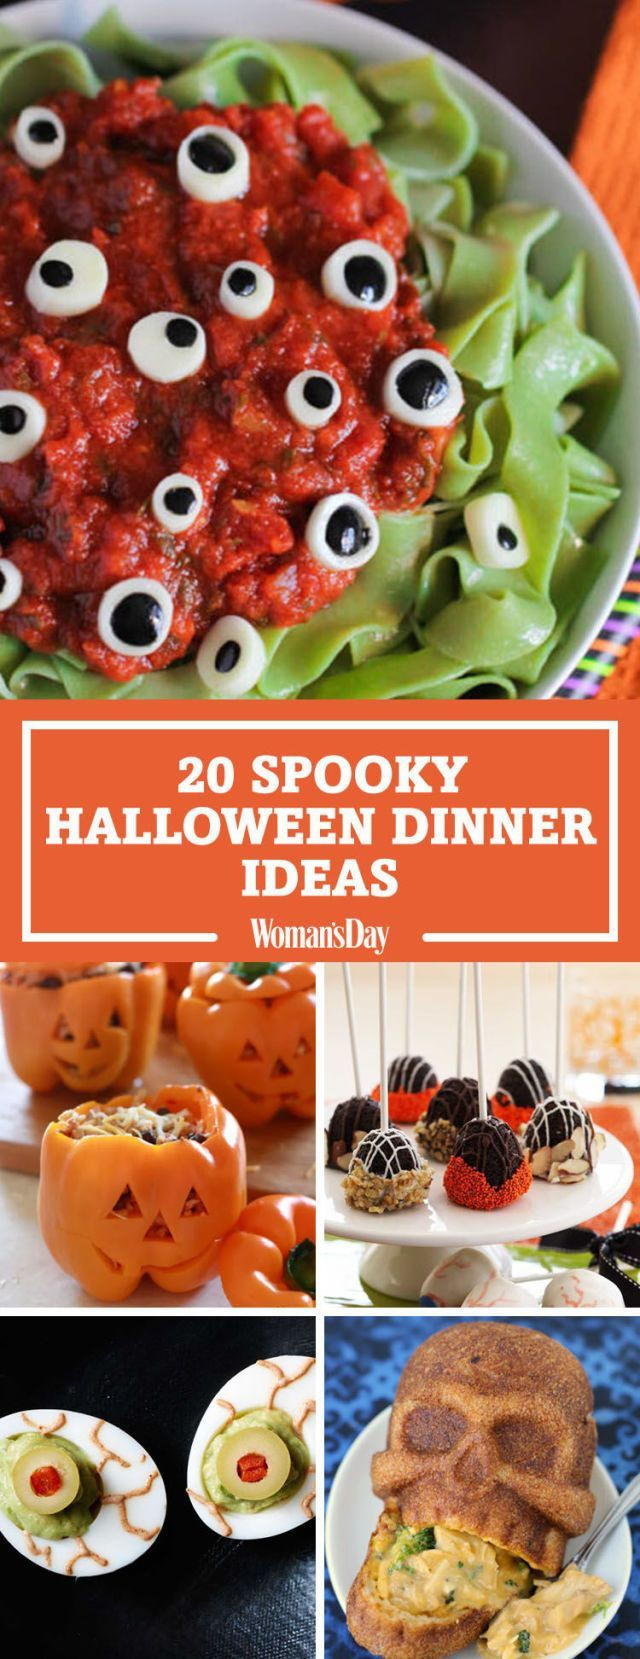 Halloween Dinner Recipes With Pictures  25 Spooky Halloween Dinner Ideas